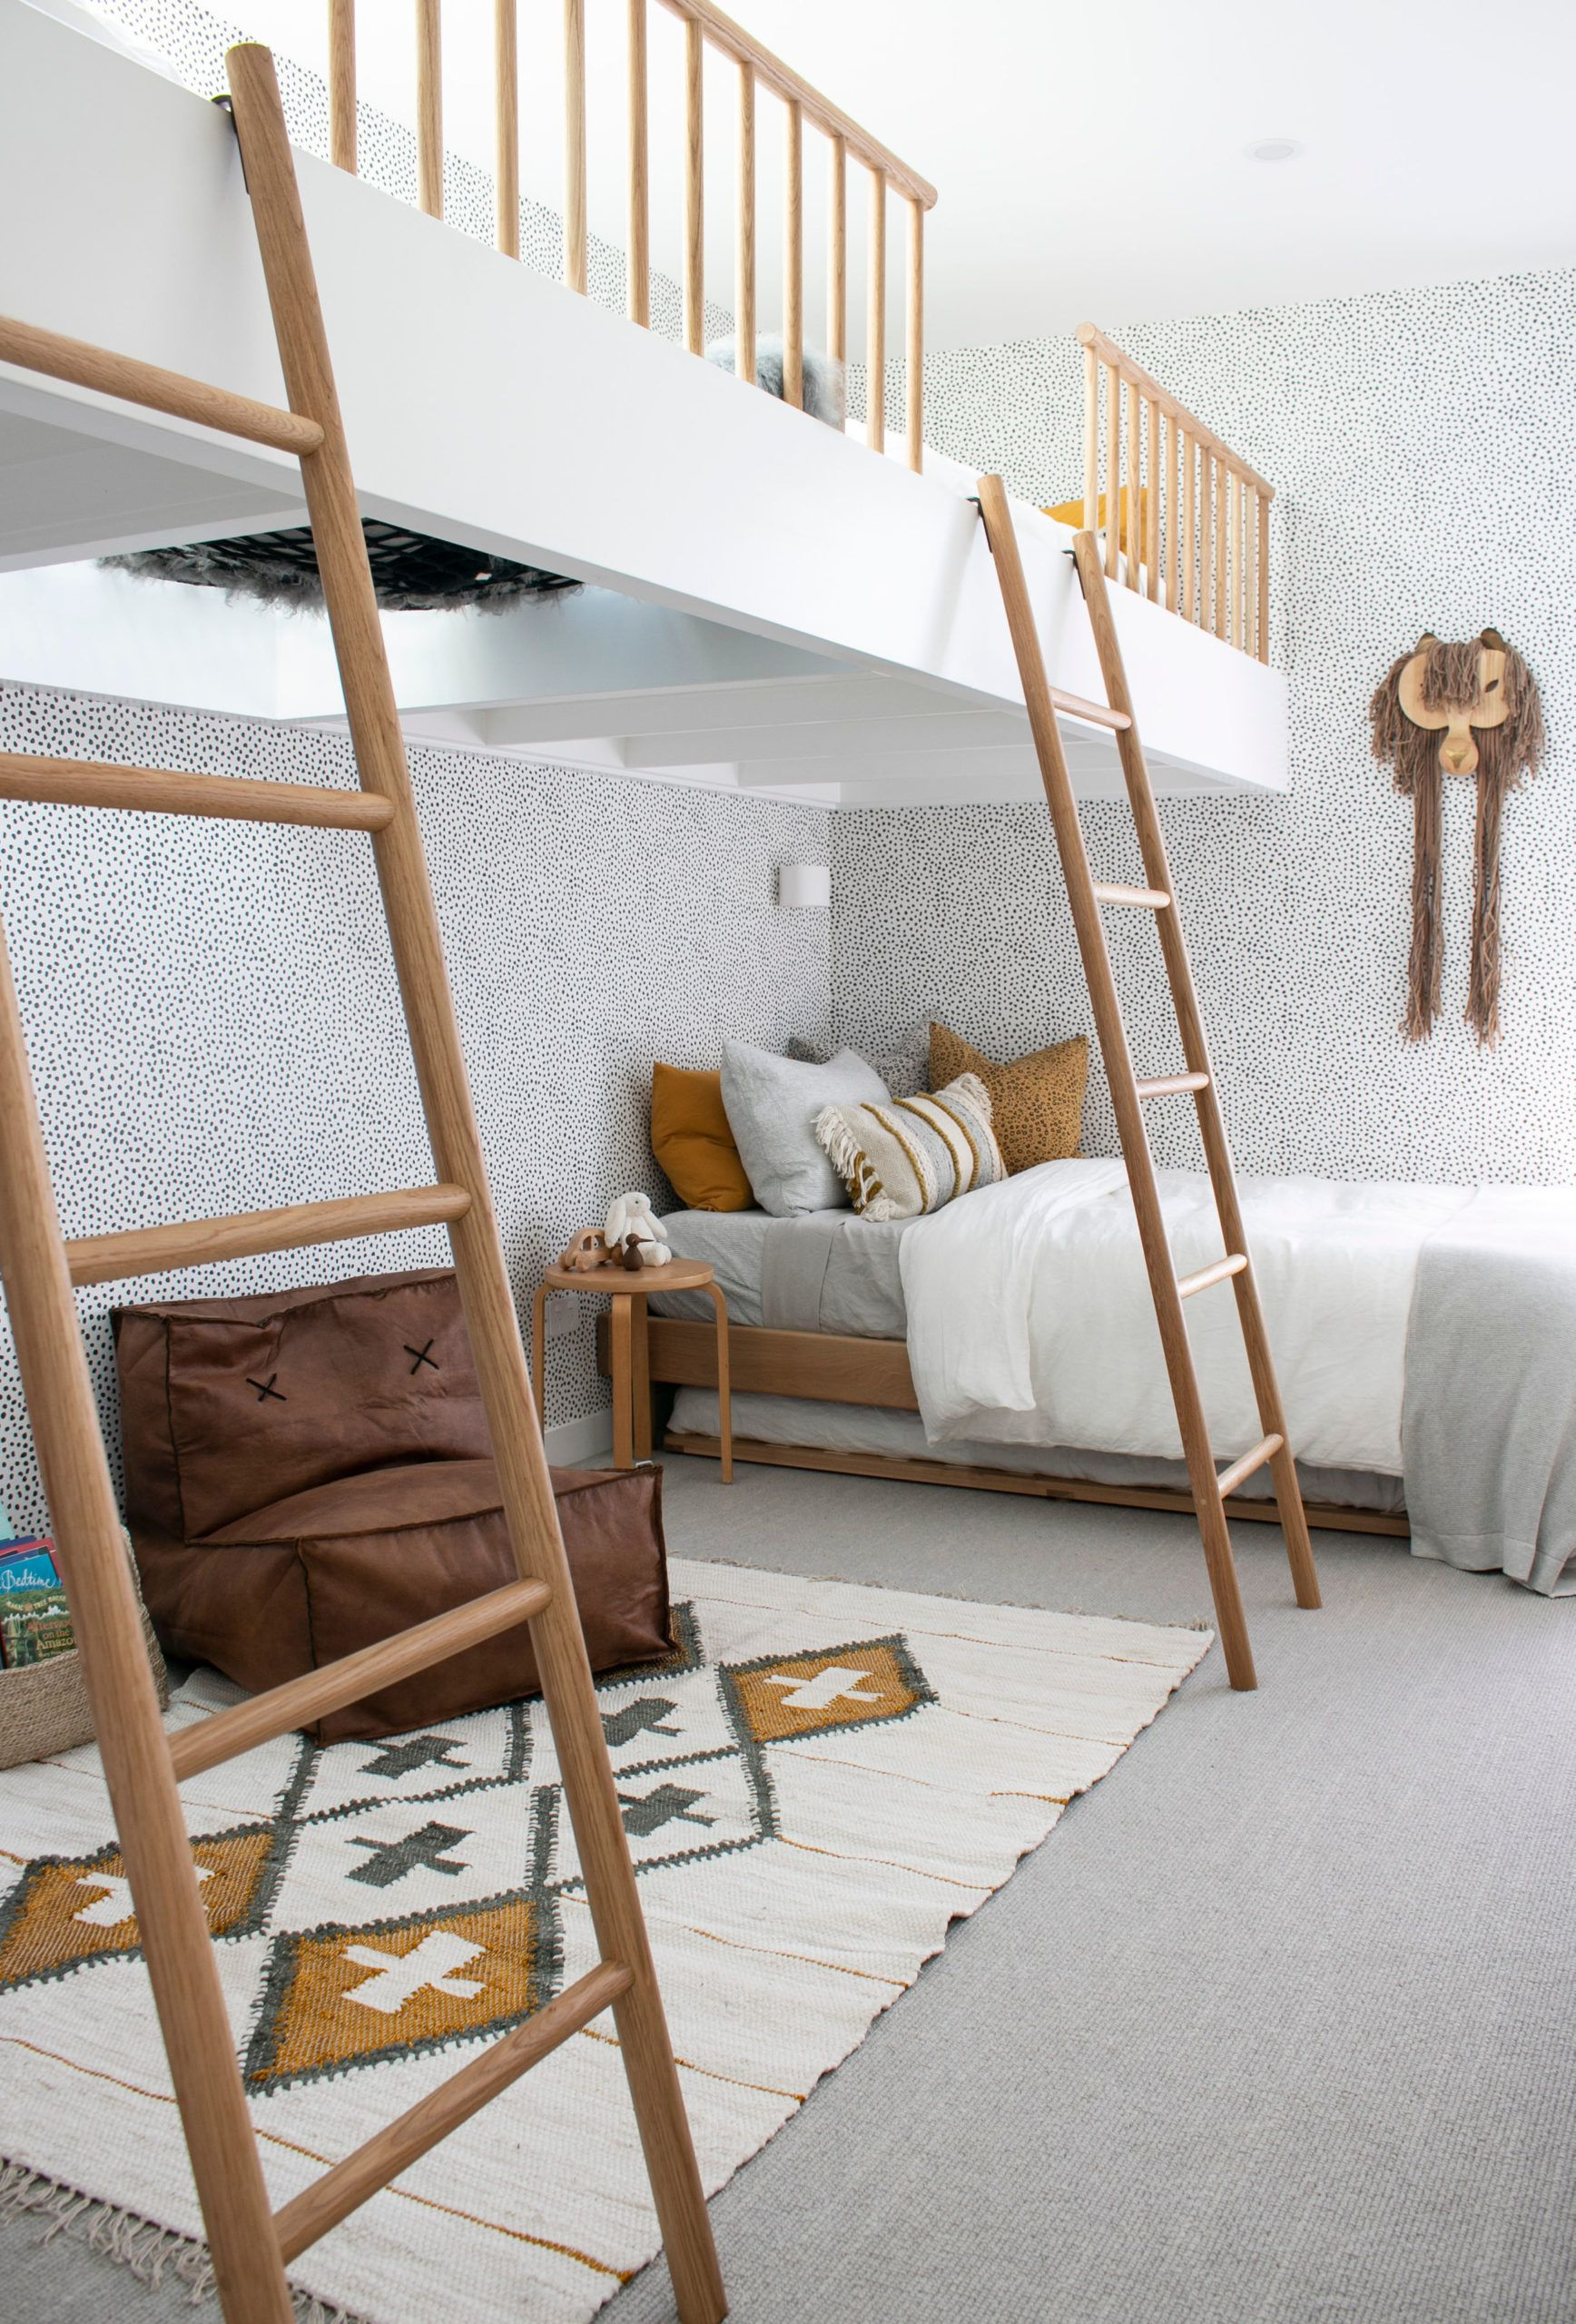 The Designory • Barefoot Bay Villa in Byron Bay • Bunk Room • Huddy's Dots Spotted Wallpaper